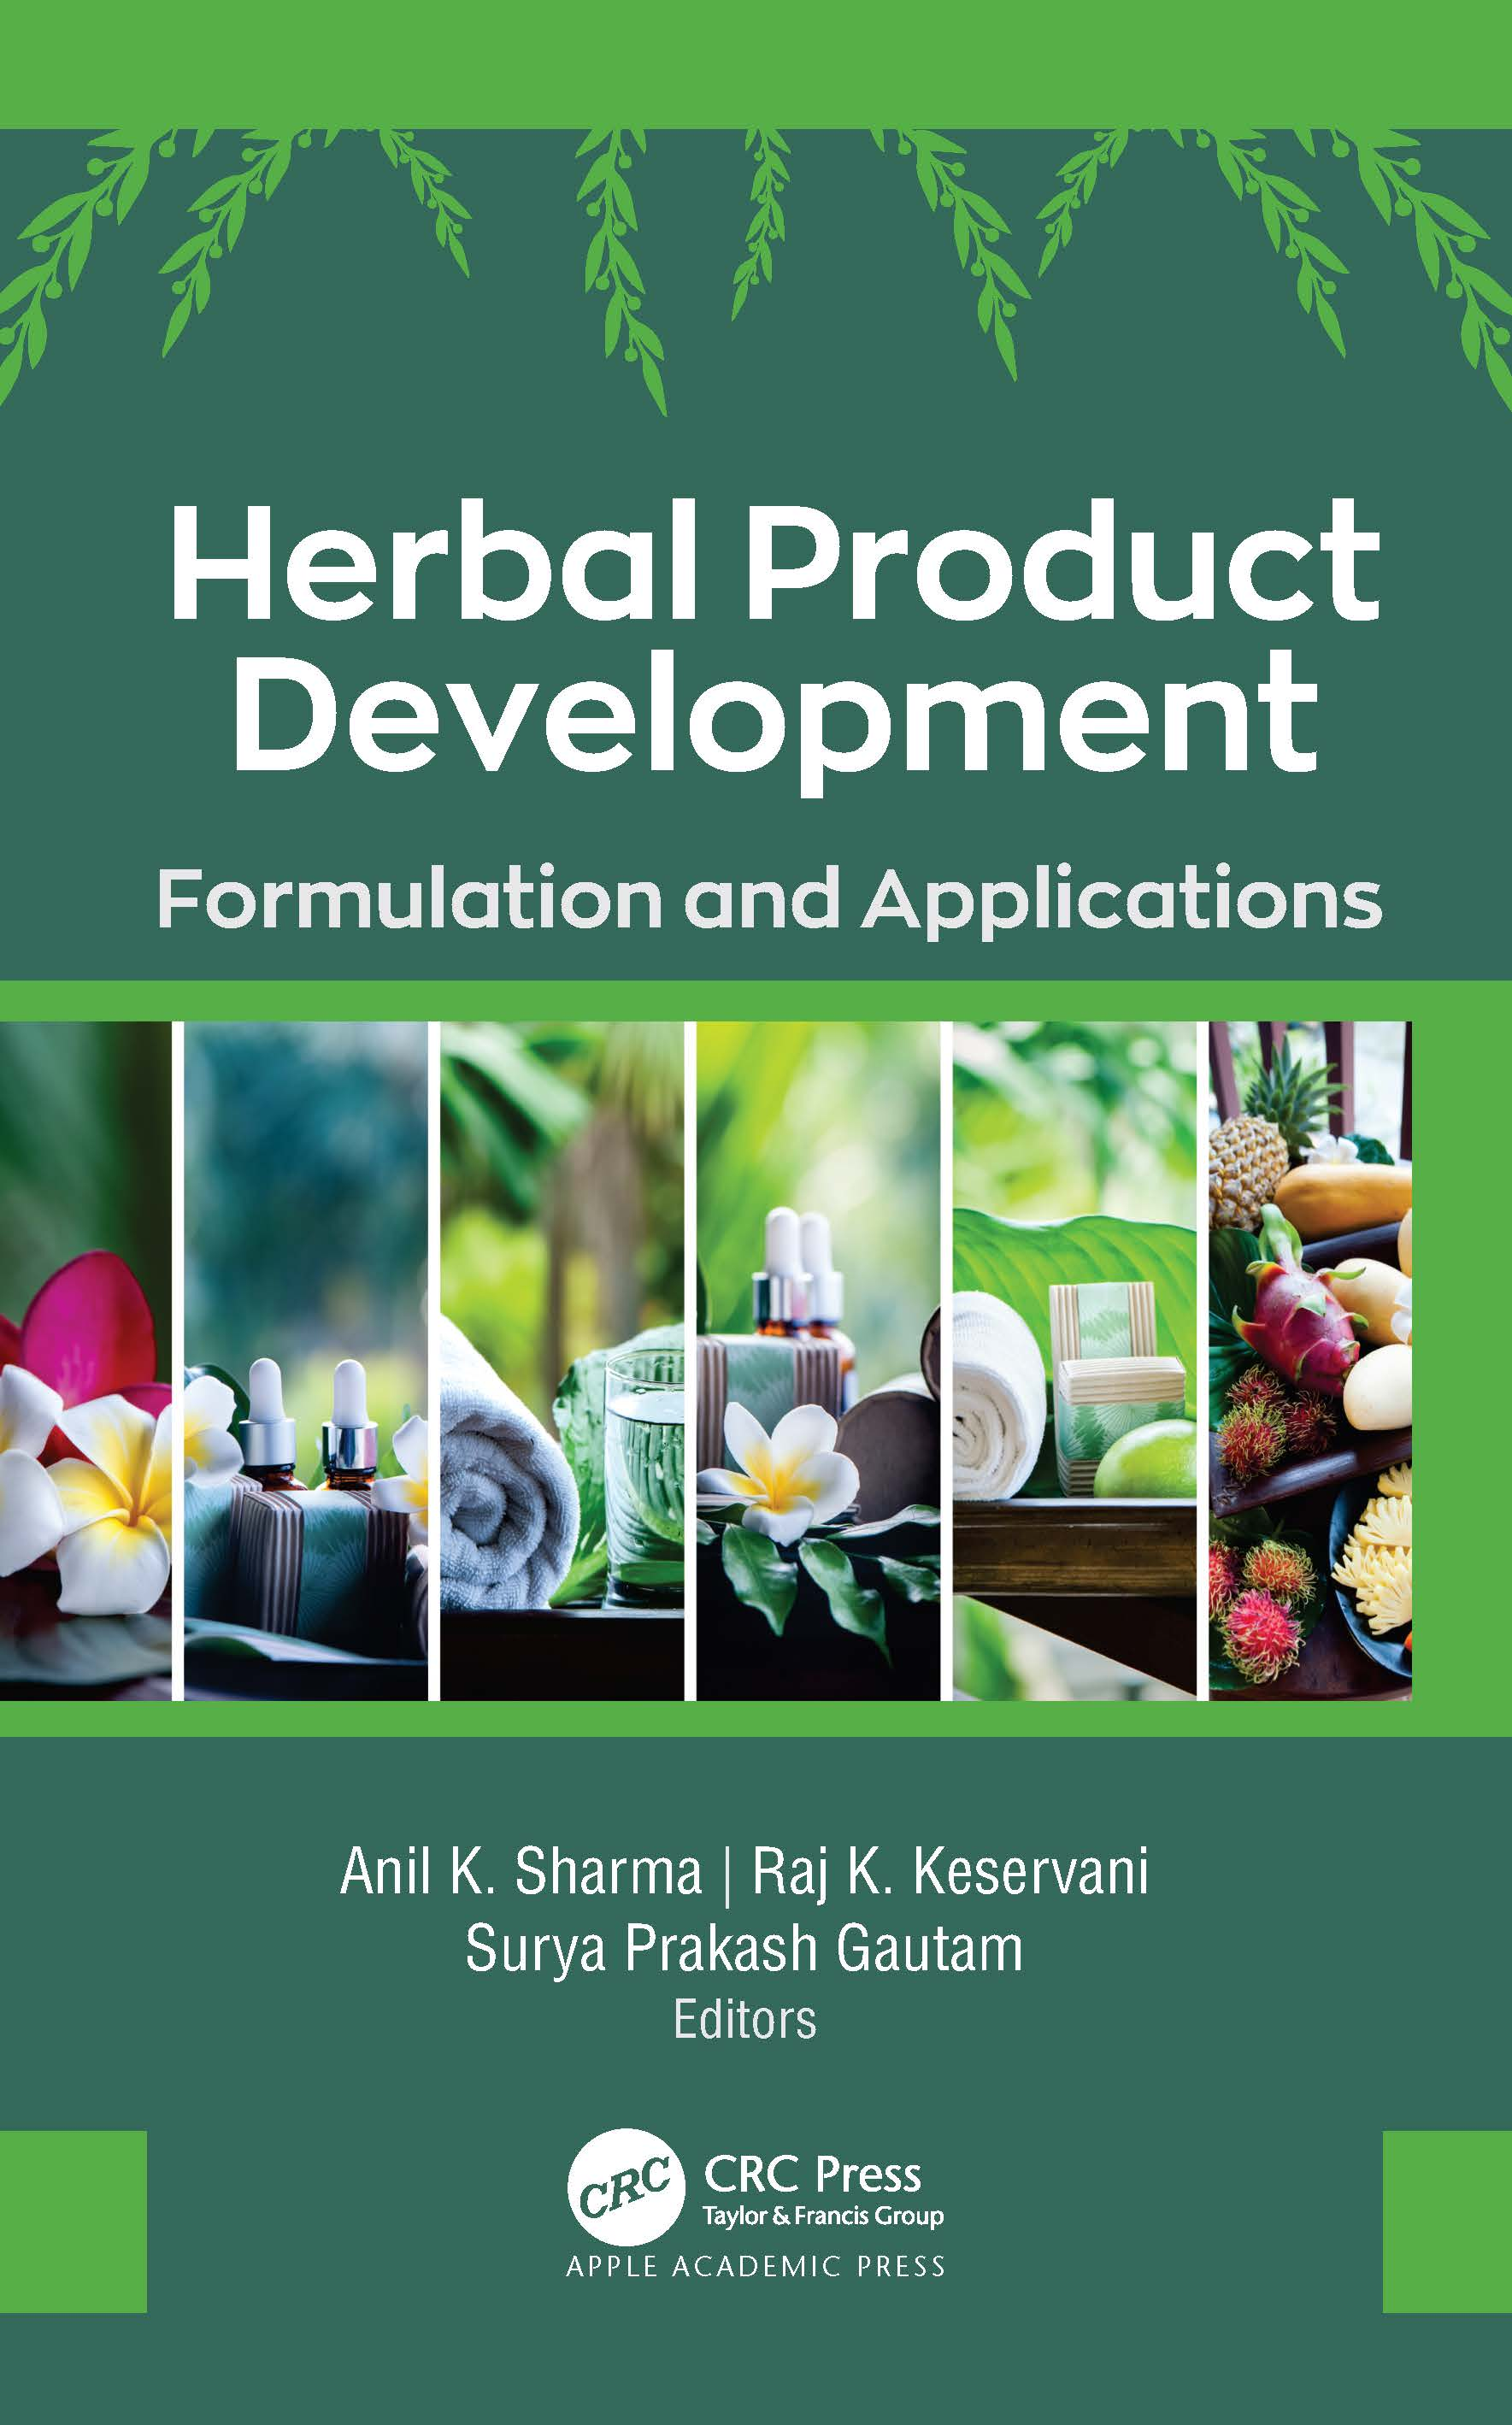 Herbal Product Development: Formulation and Applications book cover